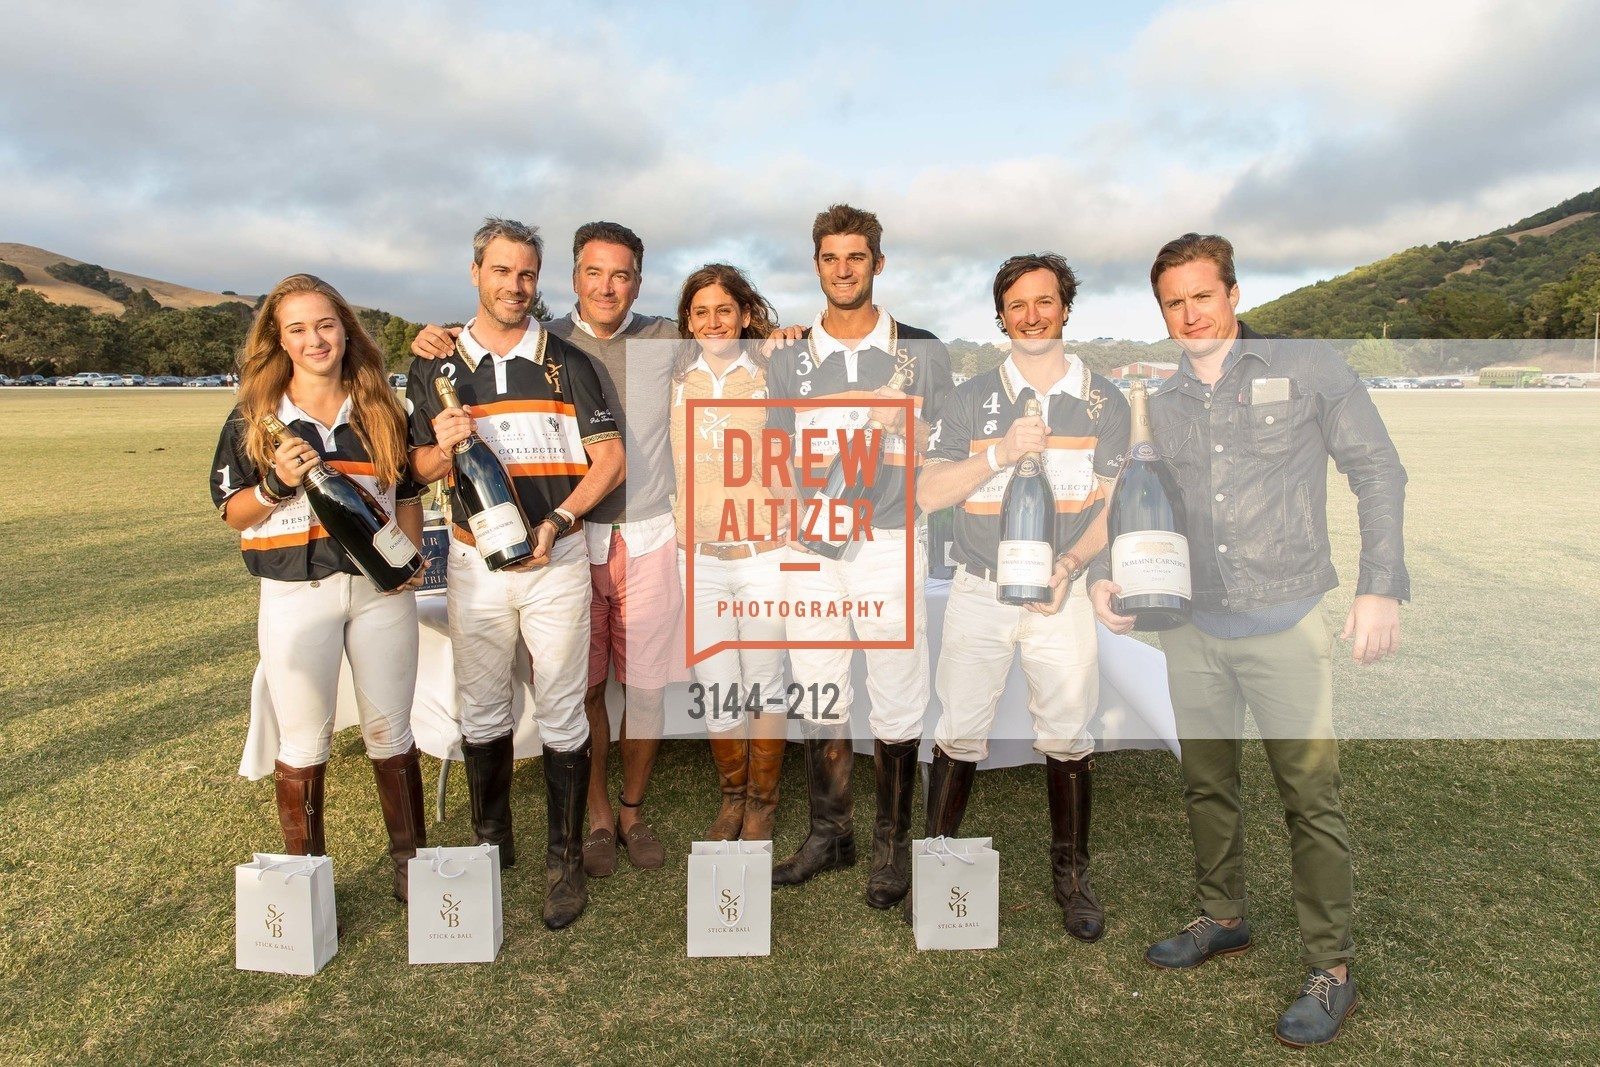 Fiona Bach, Jonathan Haswell, Michael Polenske, Elizabeth Welborn, Ignacio Deltour, John Bickford, Benjamin Rotnicki, Stick & Ball Oyster Cup Polo Tournament, Cerro Pampa Polo Club, July 25th, 2015,Drew Altizer, Drew Altizer Photography, full-service event agency, private events, San Francisco photographer, photographer California